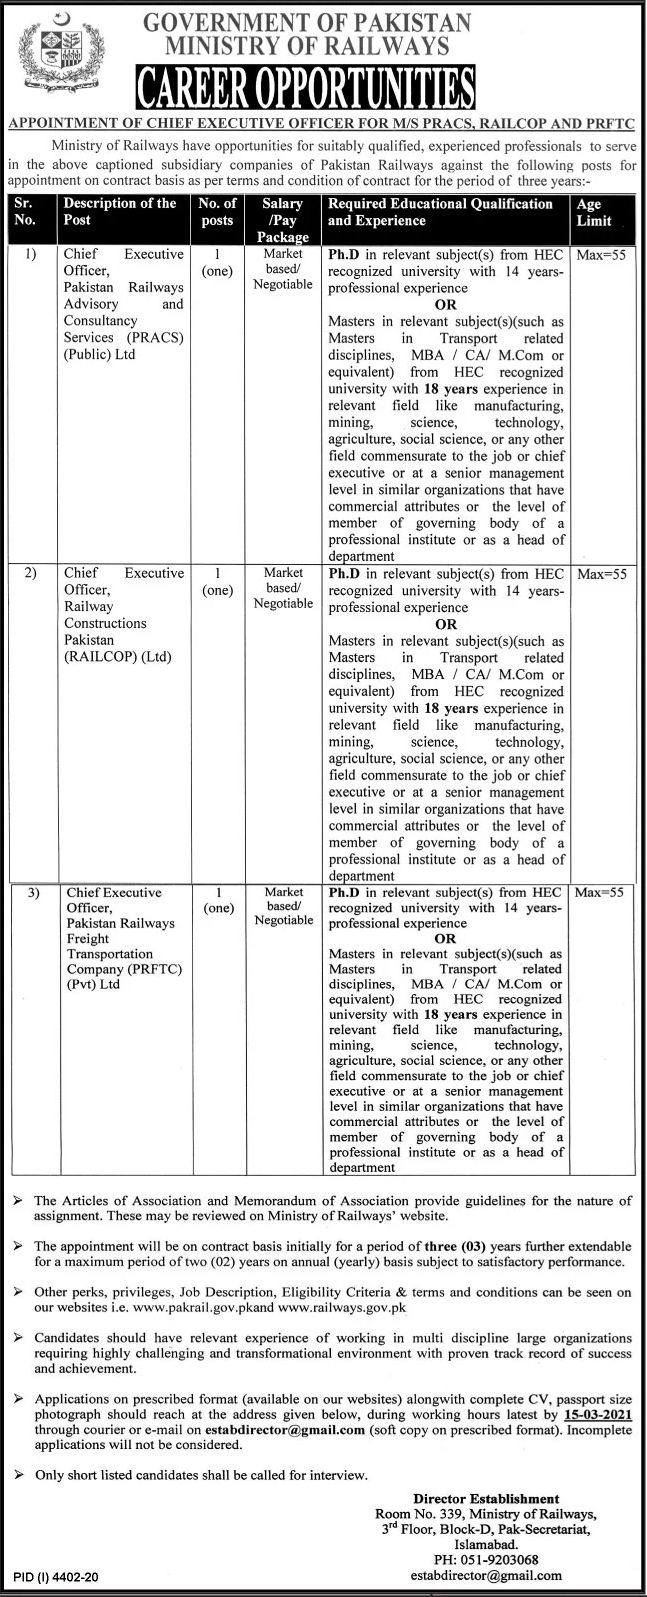 Government of Pakistan Ministry of Railways Jobs February 2021